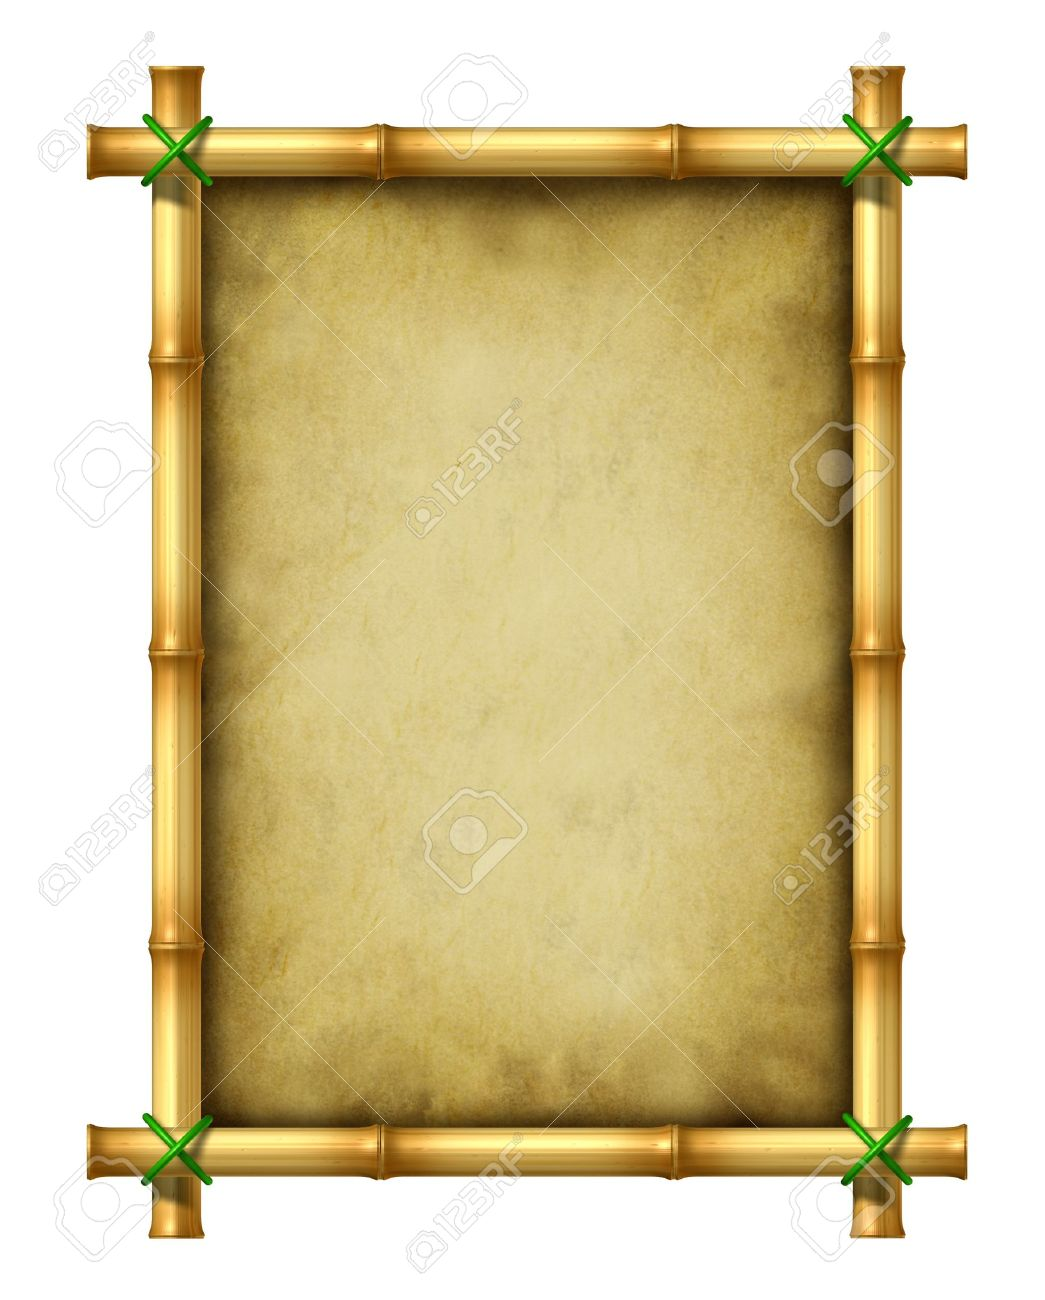 Bamboo Blank Frame Stock Photo, Picture And Royalty Free Image ...